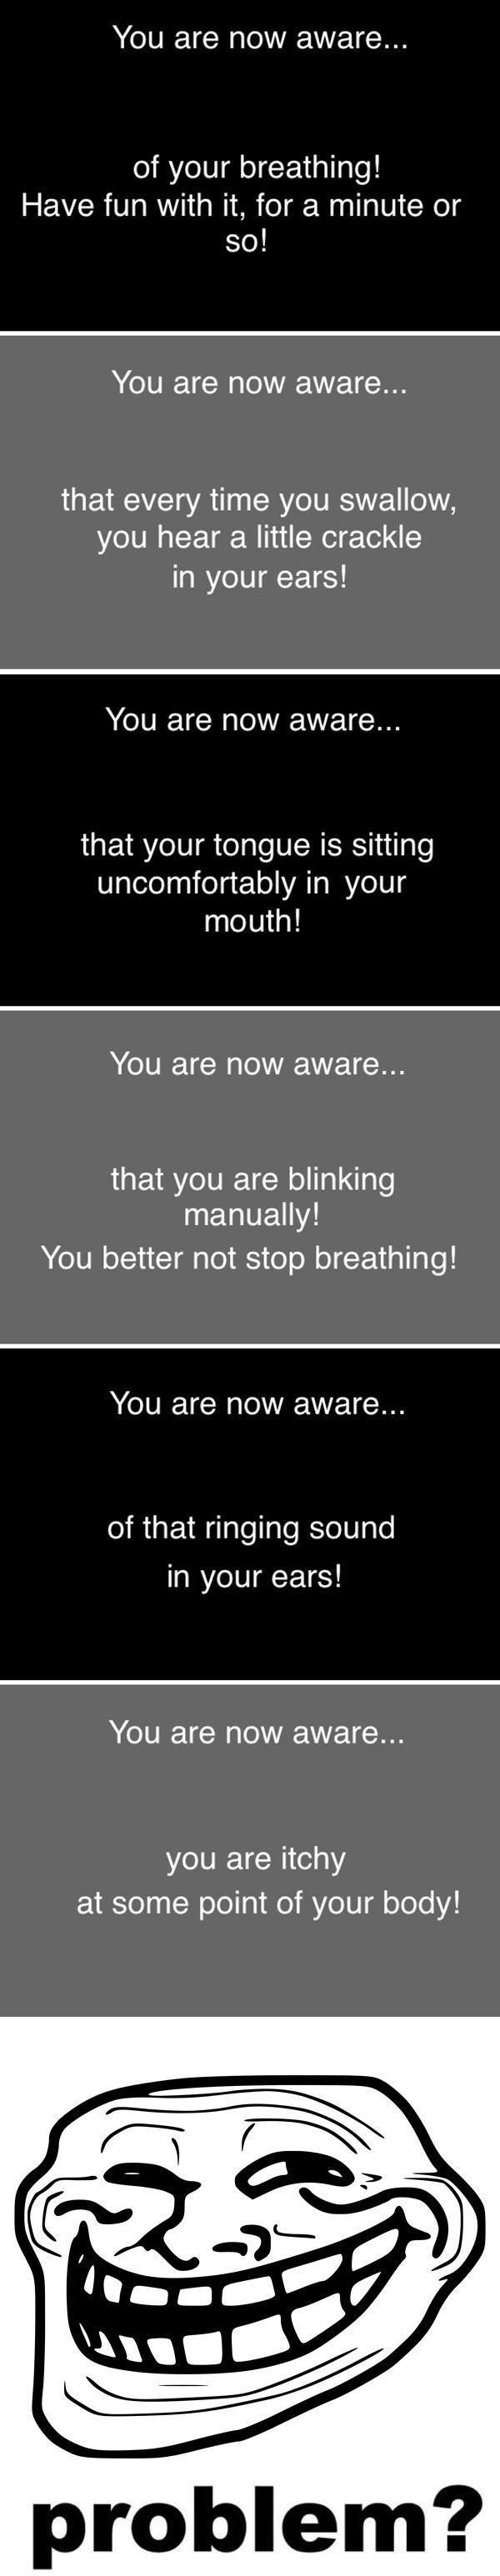 You are now aware // funny pictures - funny photos - funny images - funny pics - funny quotes - #lol #humor #funnypictures